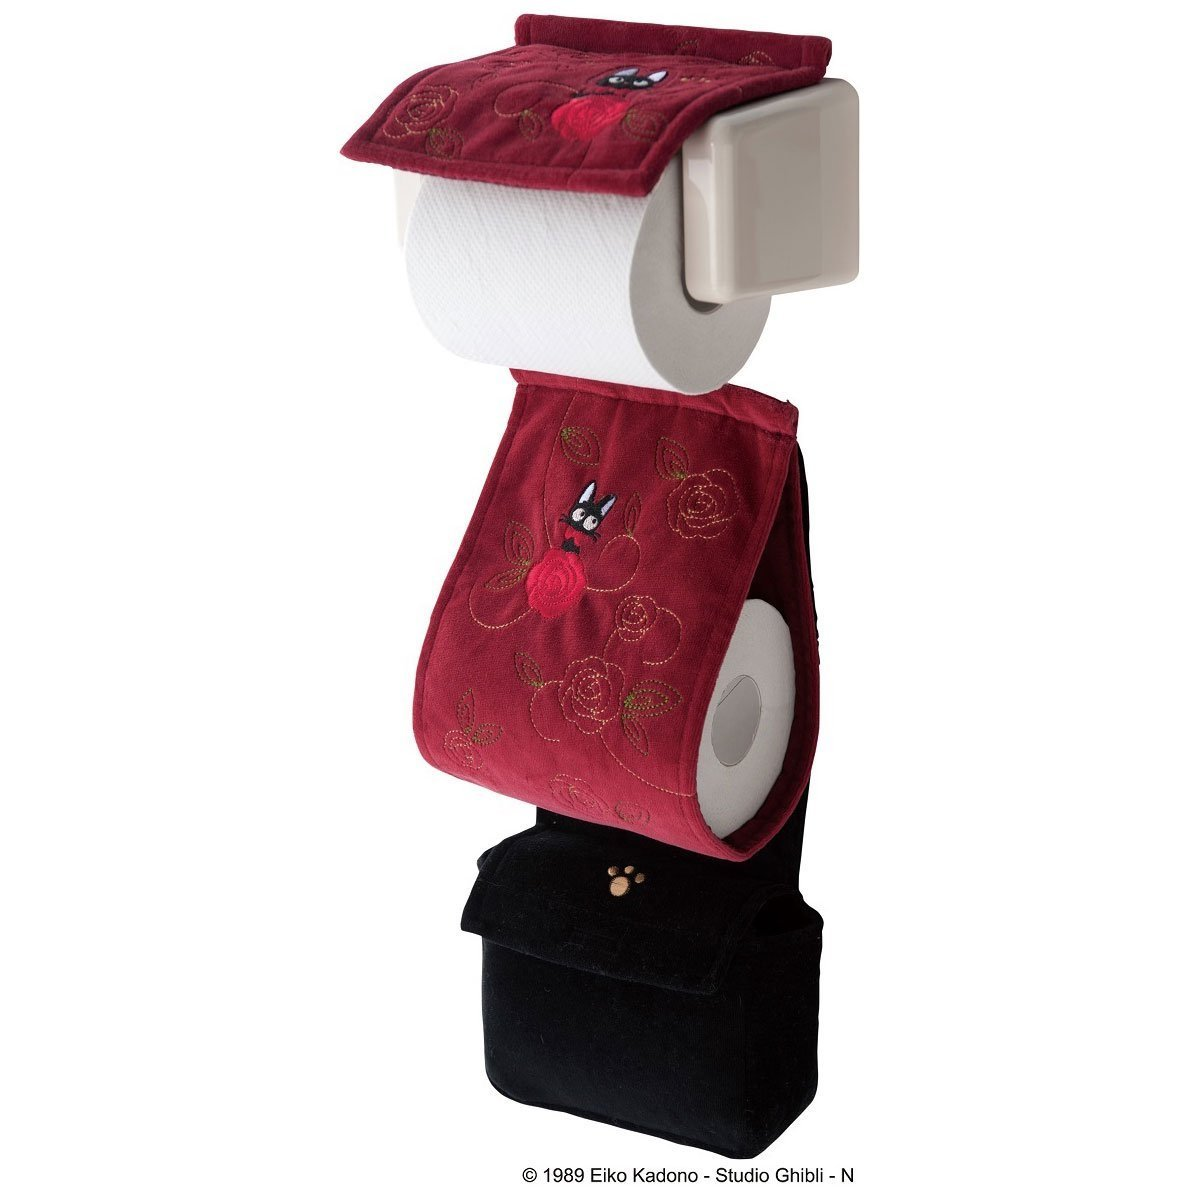 Senko Kiki's Delivery Service Toilet Paper Holder w/Paper Stock Holder & Small Bag Rose Bouquet